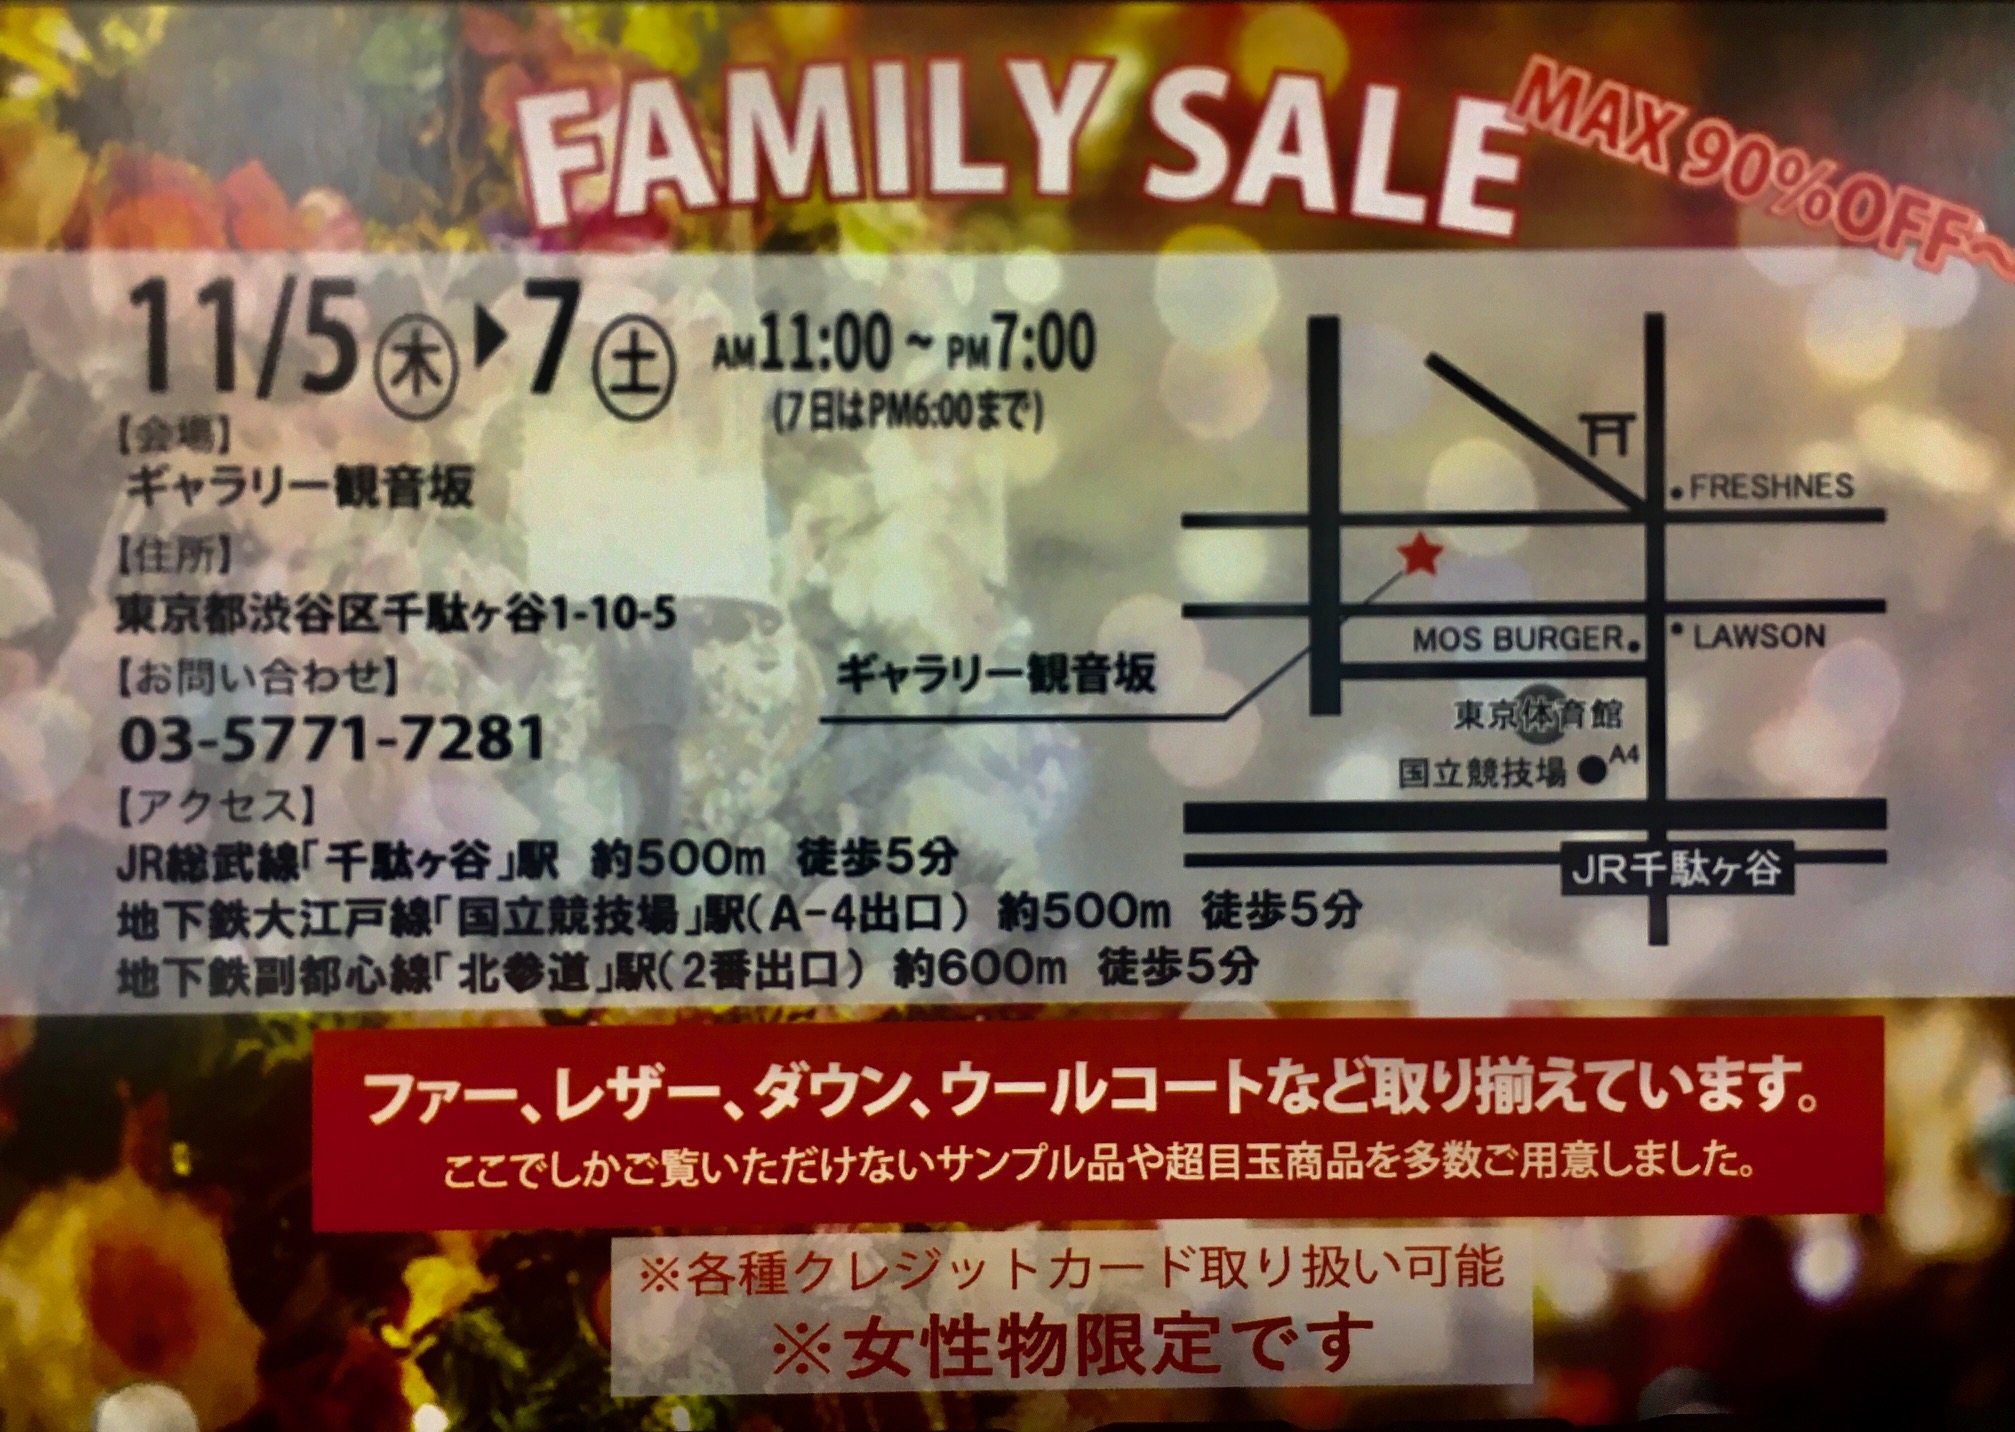 FAMILY SALEのご案内